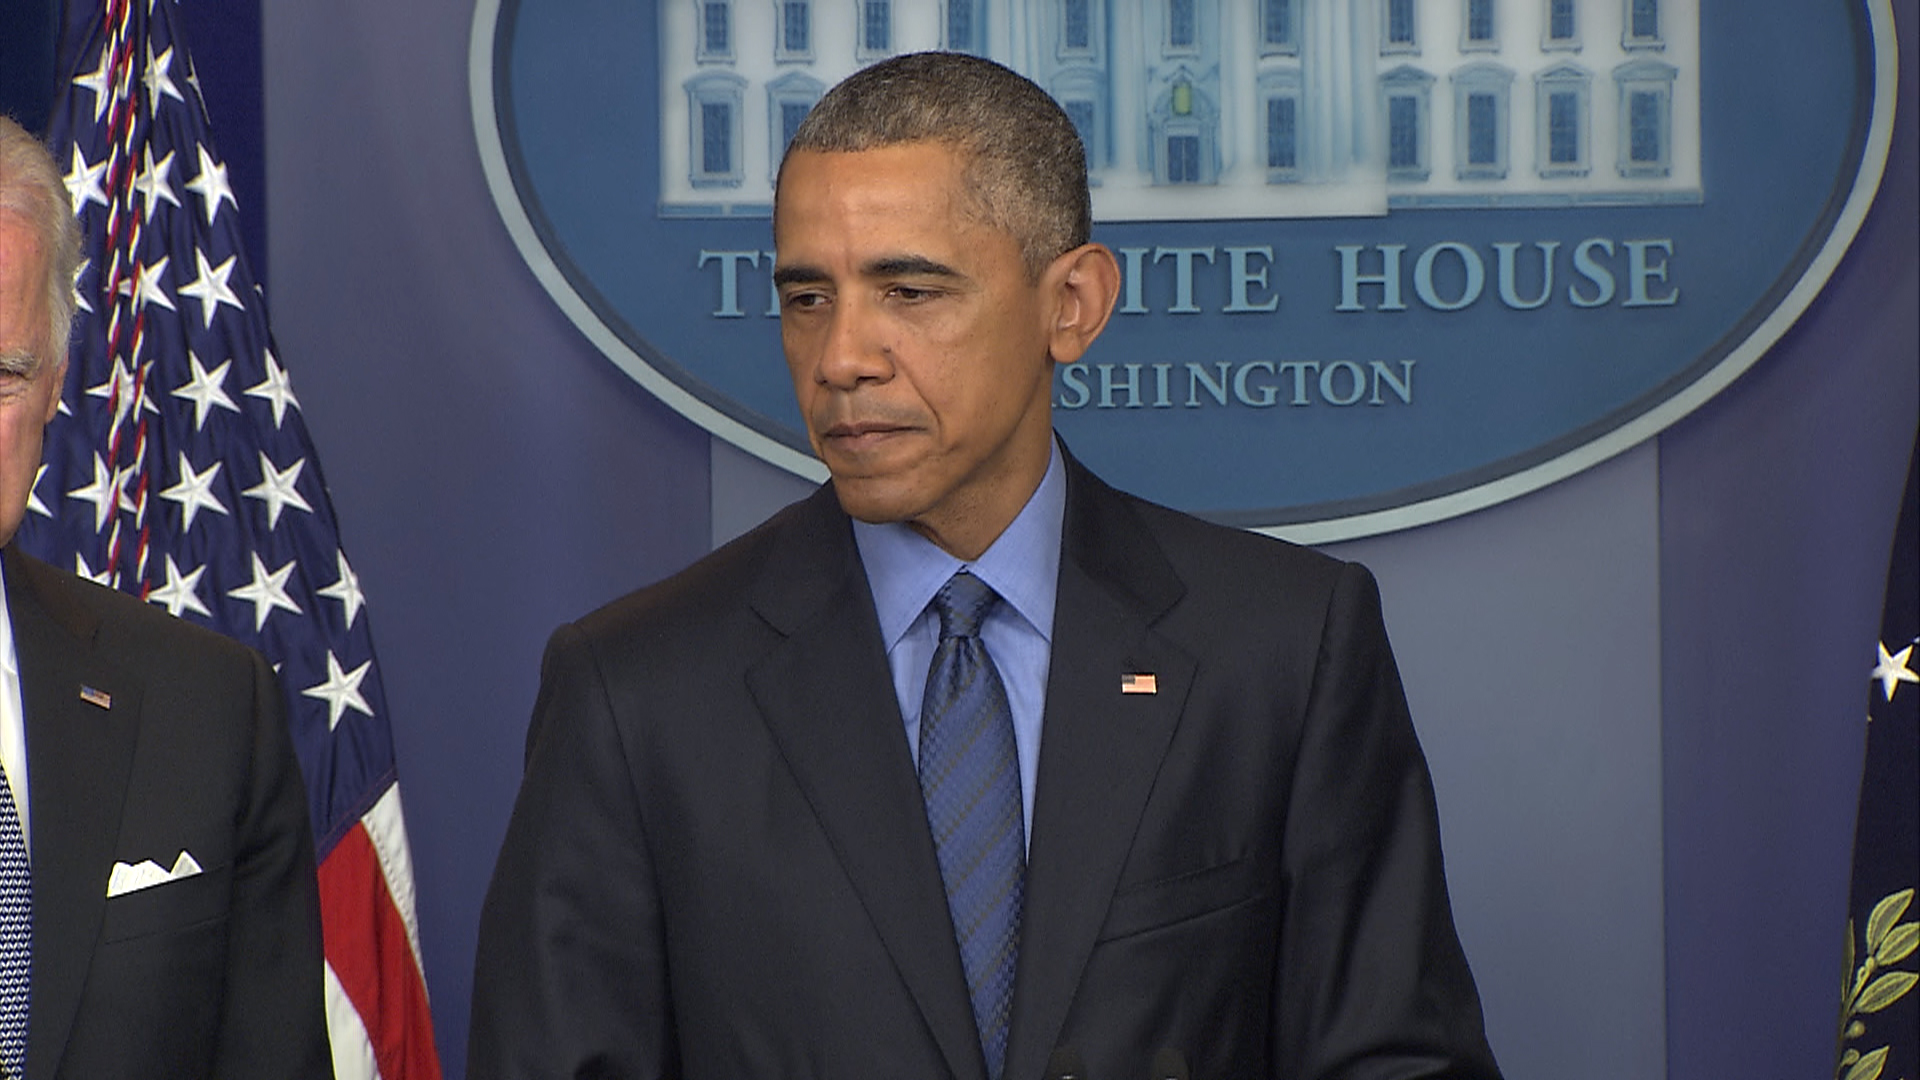 Obama on Gun Control: I'm Frustrated by Lack of 'Common Sense' Laws